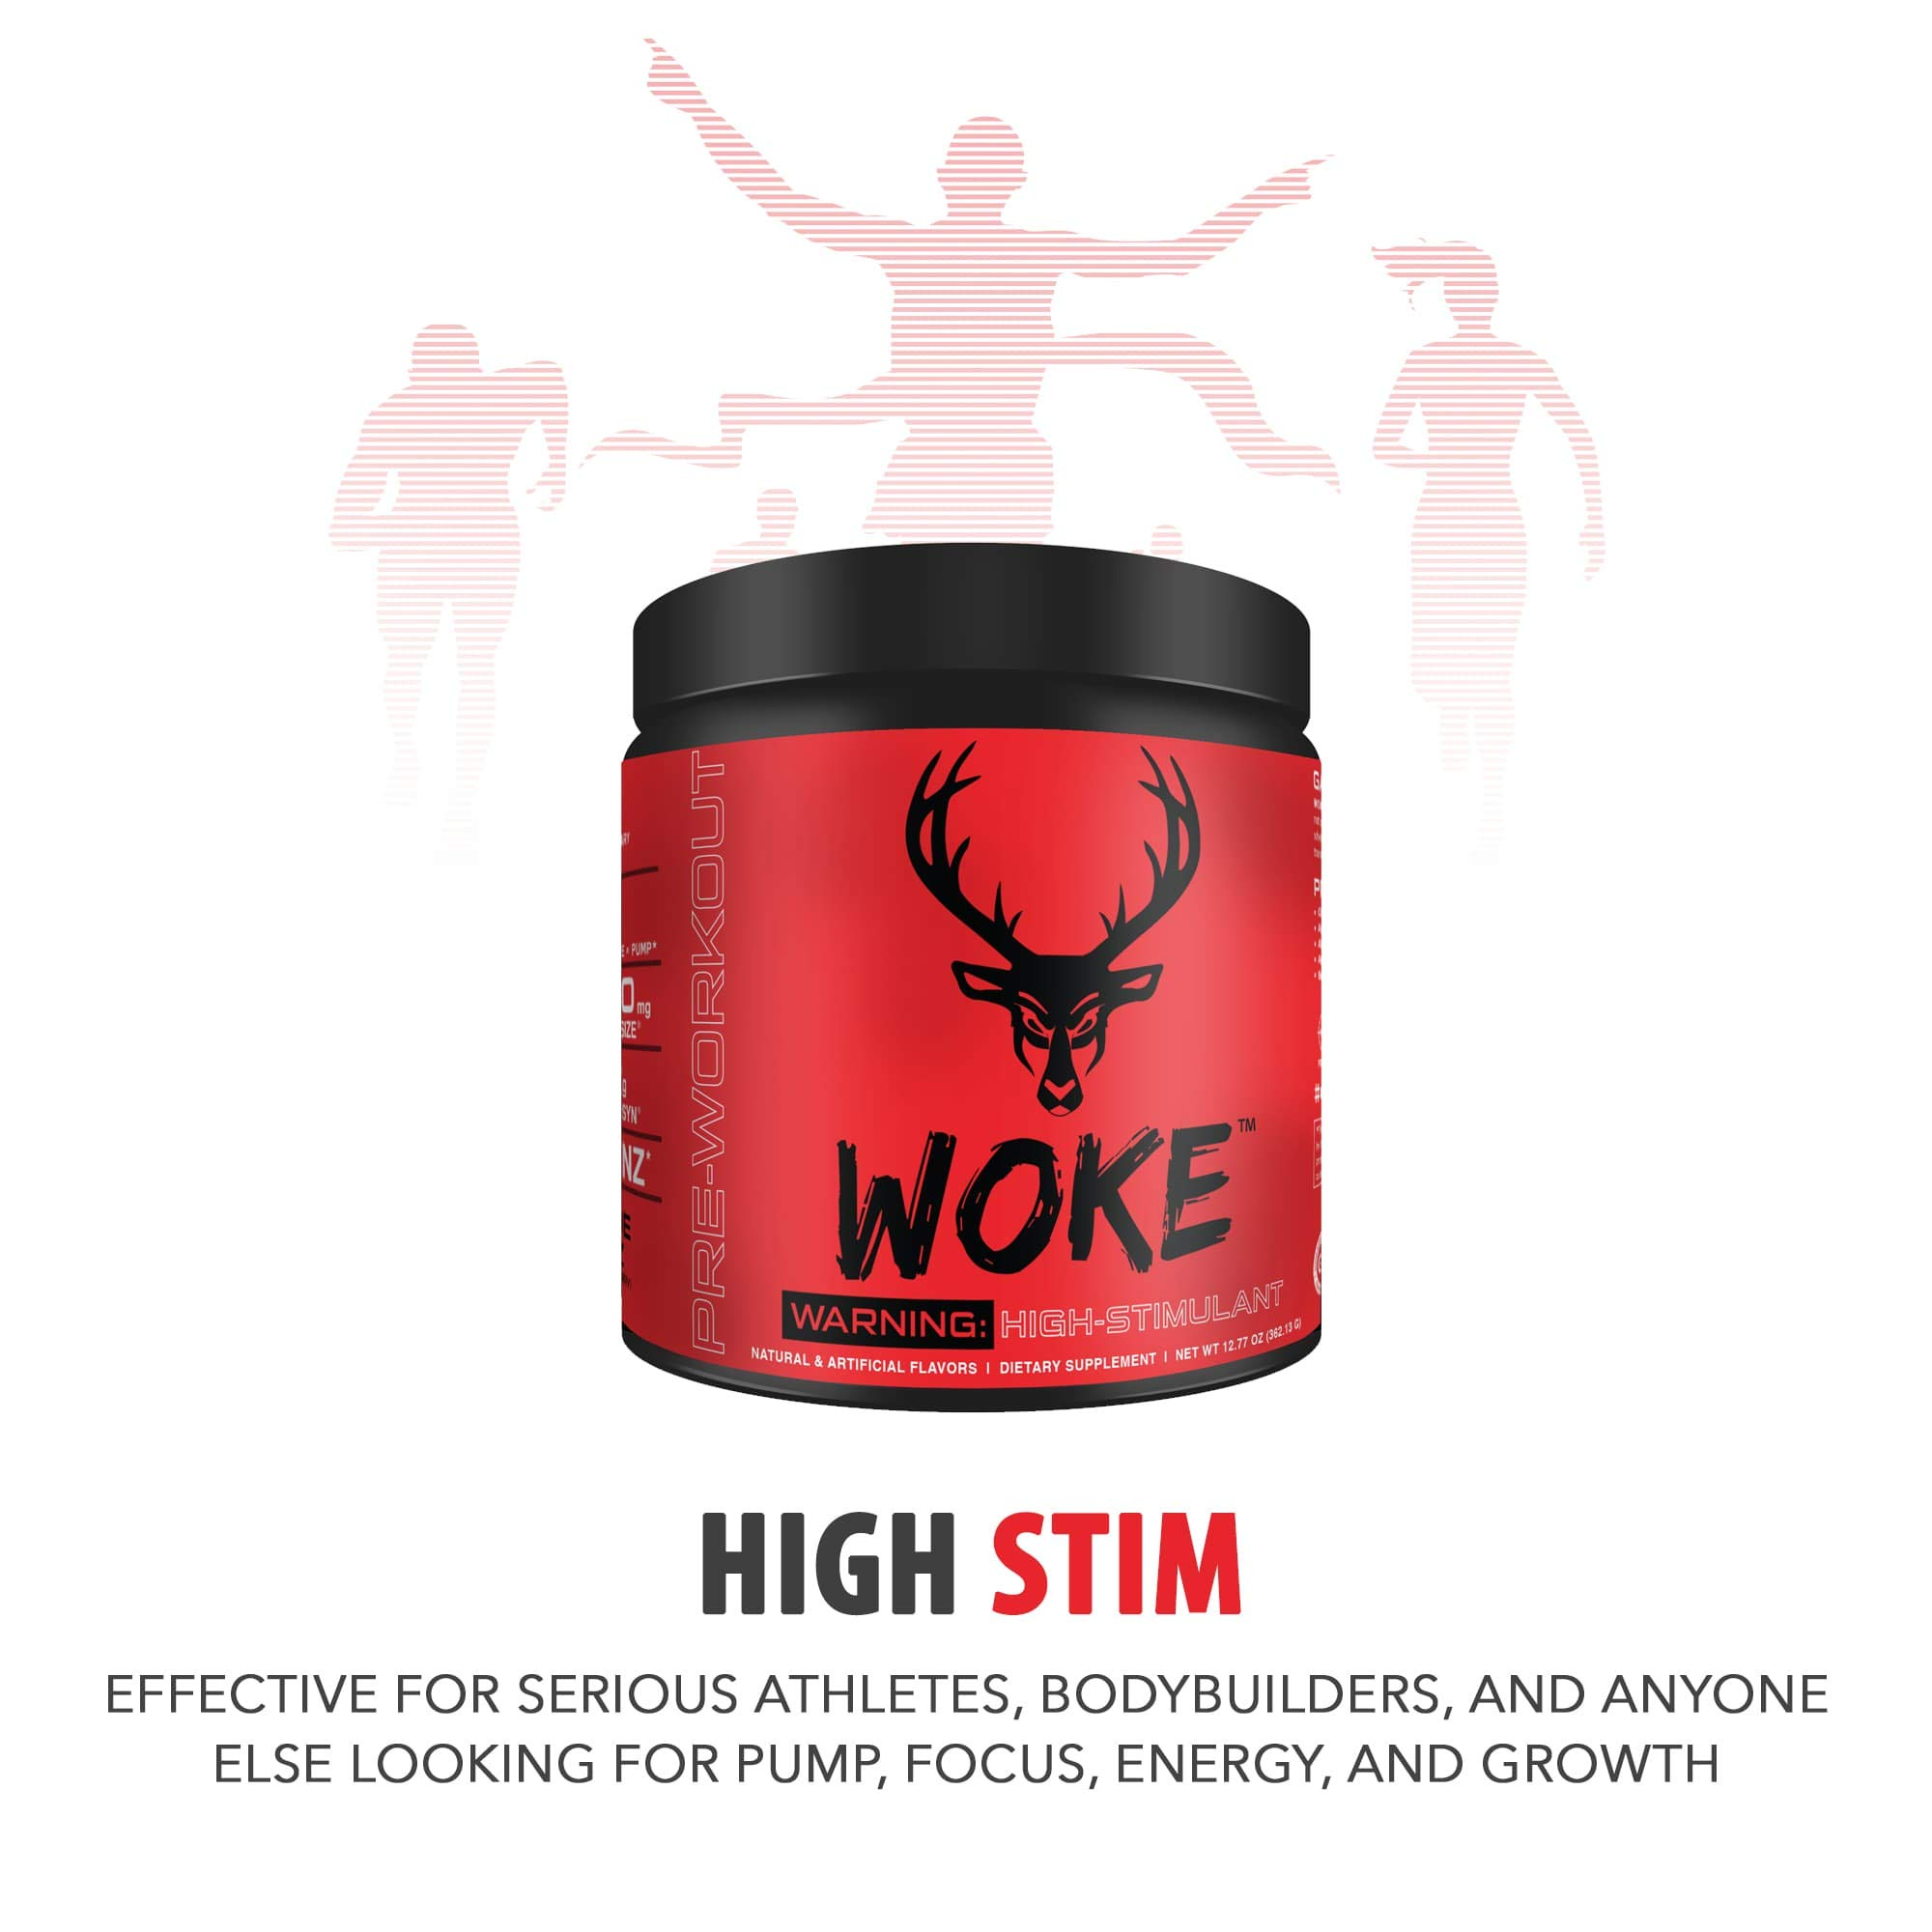 Bucked Up - Woke - HIGH STIM Pre Workout - Best Tasting - Focus Nootropic, Pump, Strength and Growth, 30 Servings (Blood Raz) by BUCKED UP (Image #4)